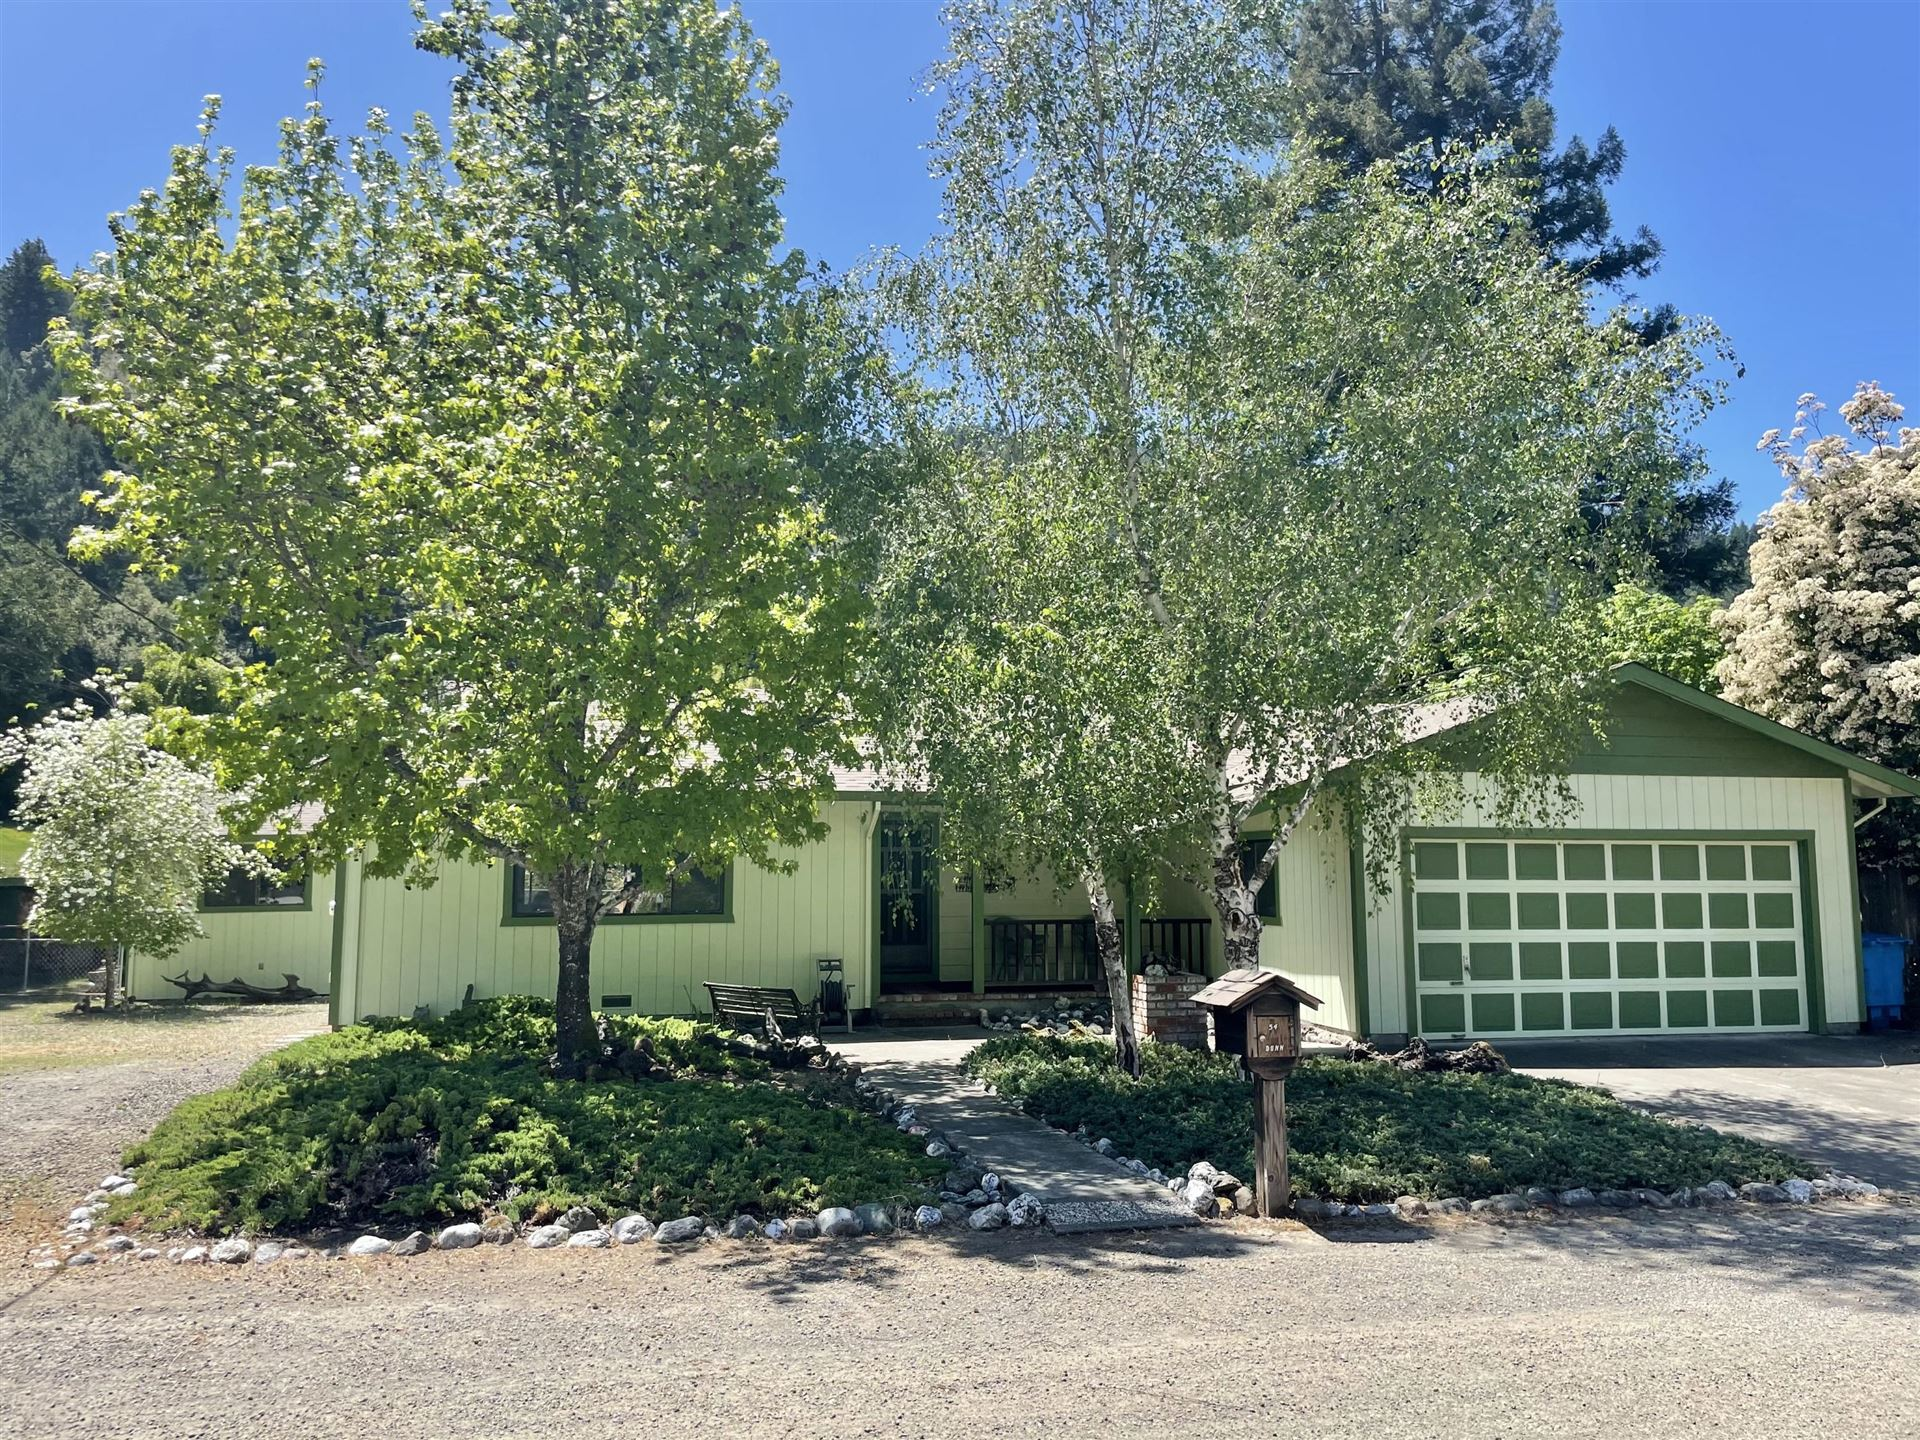 54 Palomino Way, Garberville, CA 95542 - MLS#: 258973